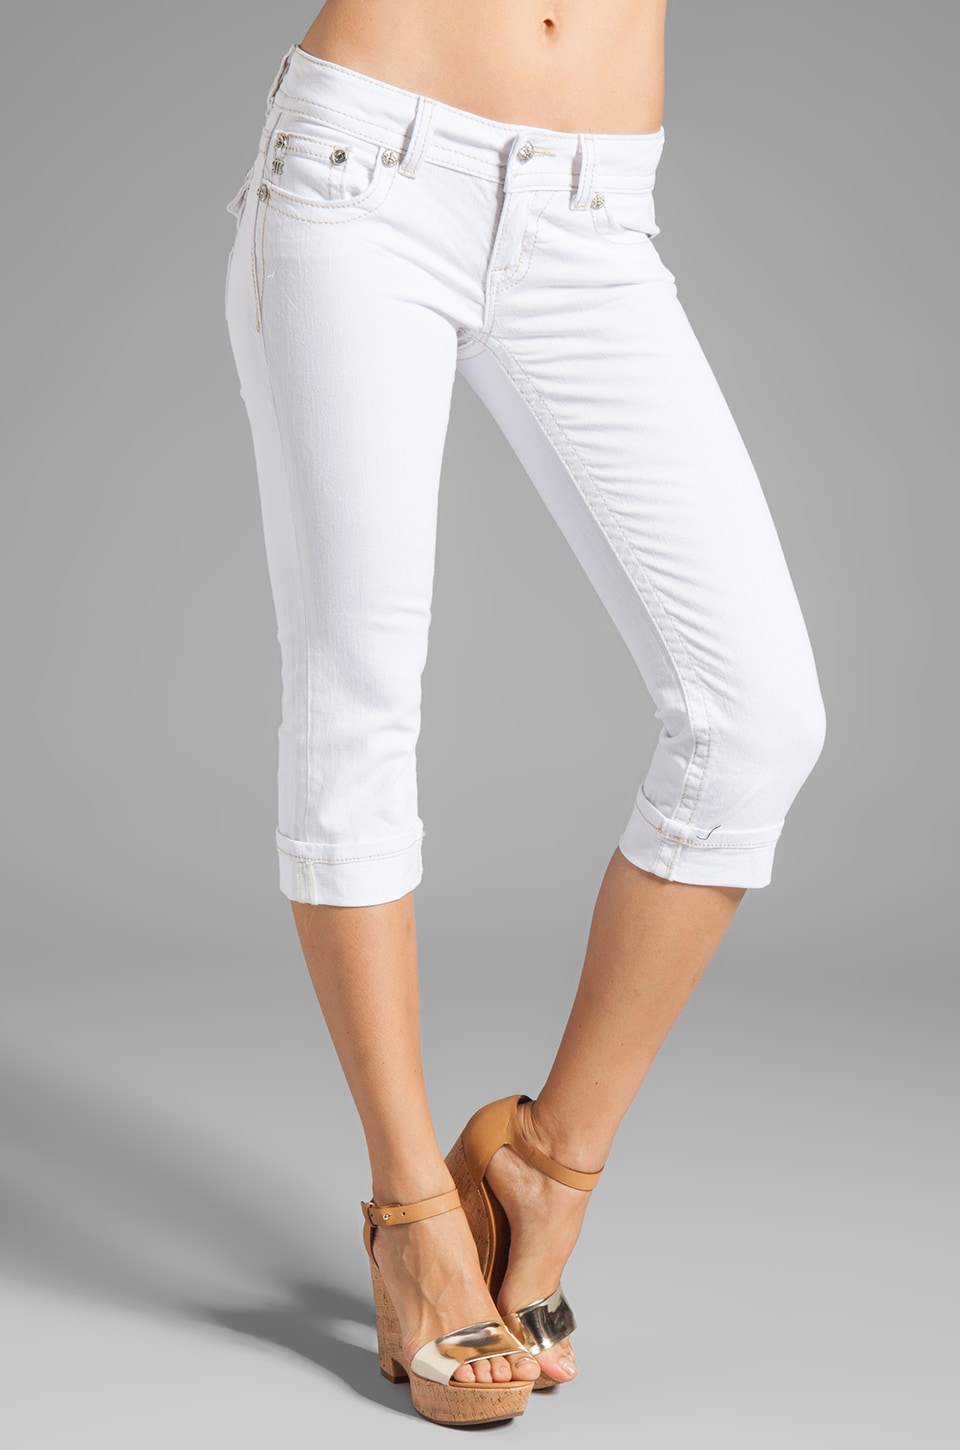 Miss Me Jeans Capri in White